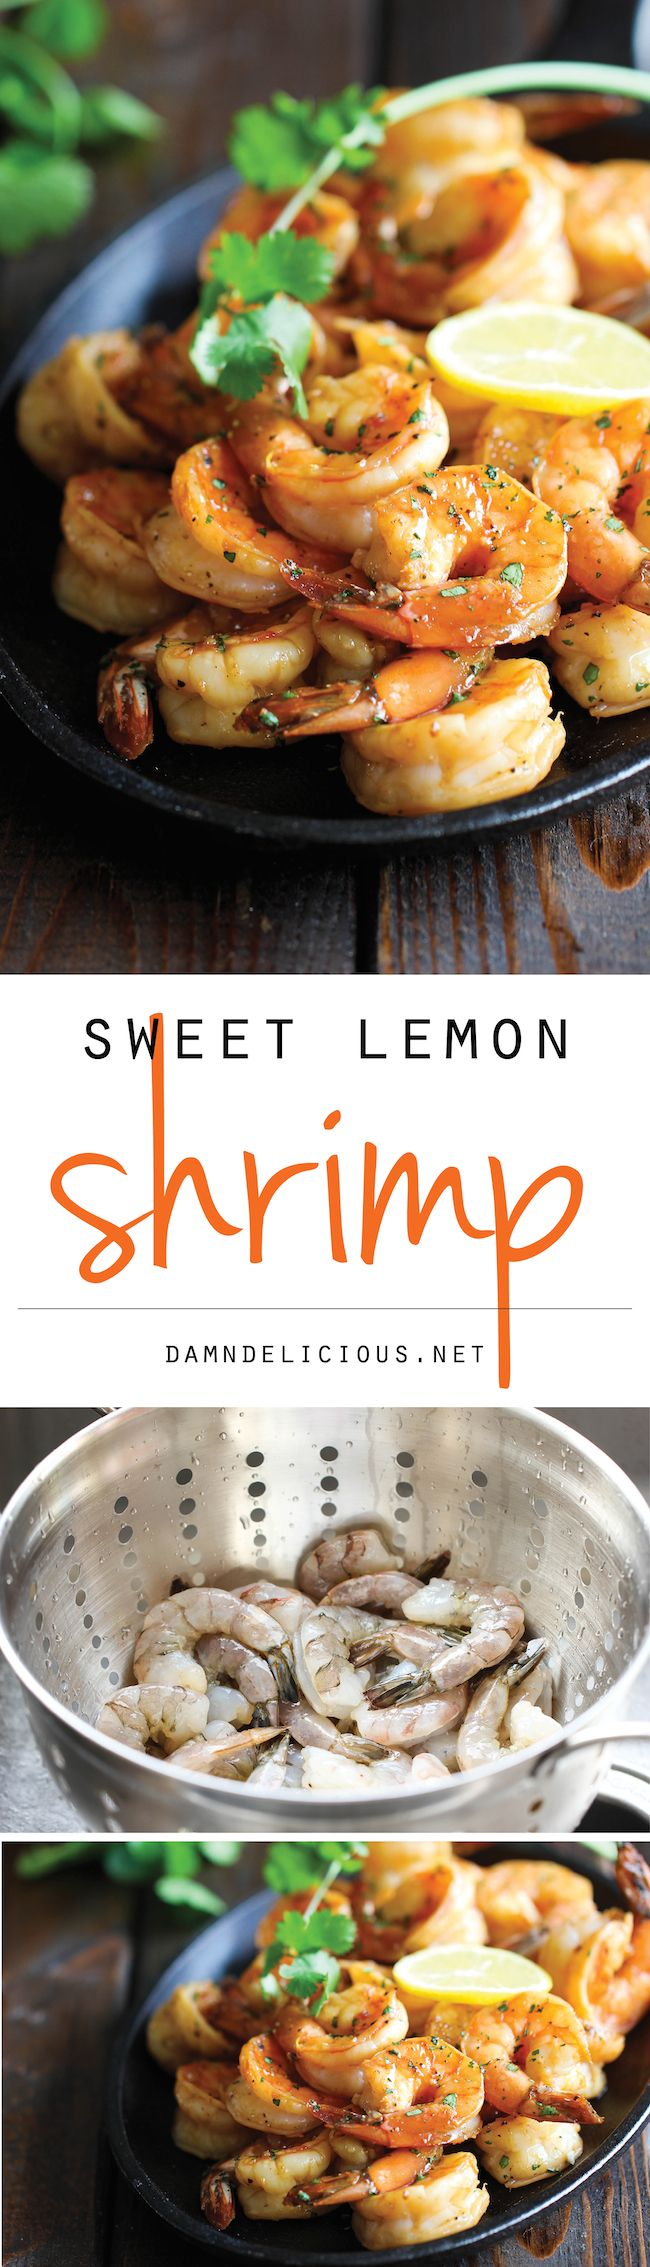 entree : Sweet Lemon Shrimp - The easiest, most simple and flavorful shrimp marinated in a sweet and tangy lemon sauce that everyone will love!| protein